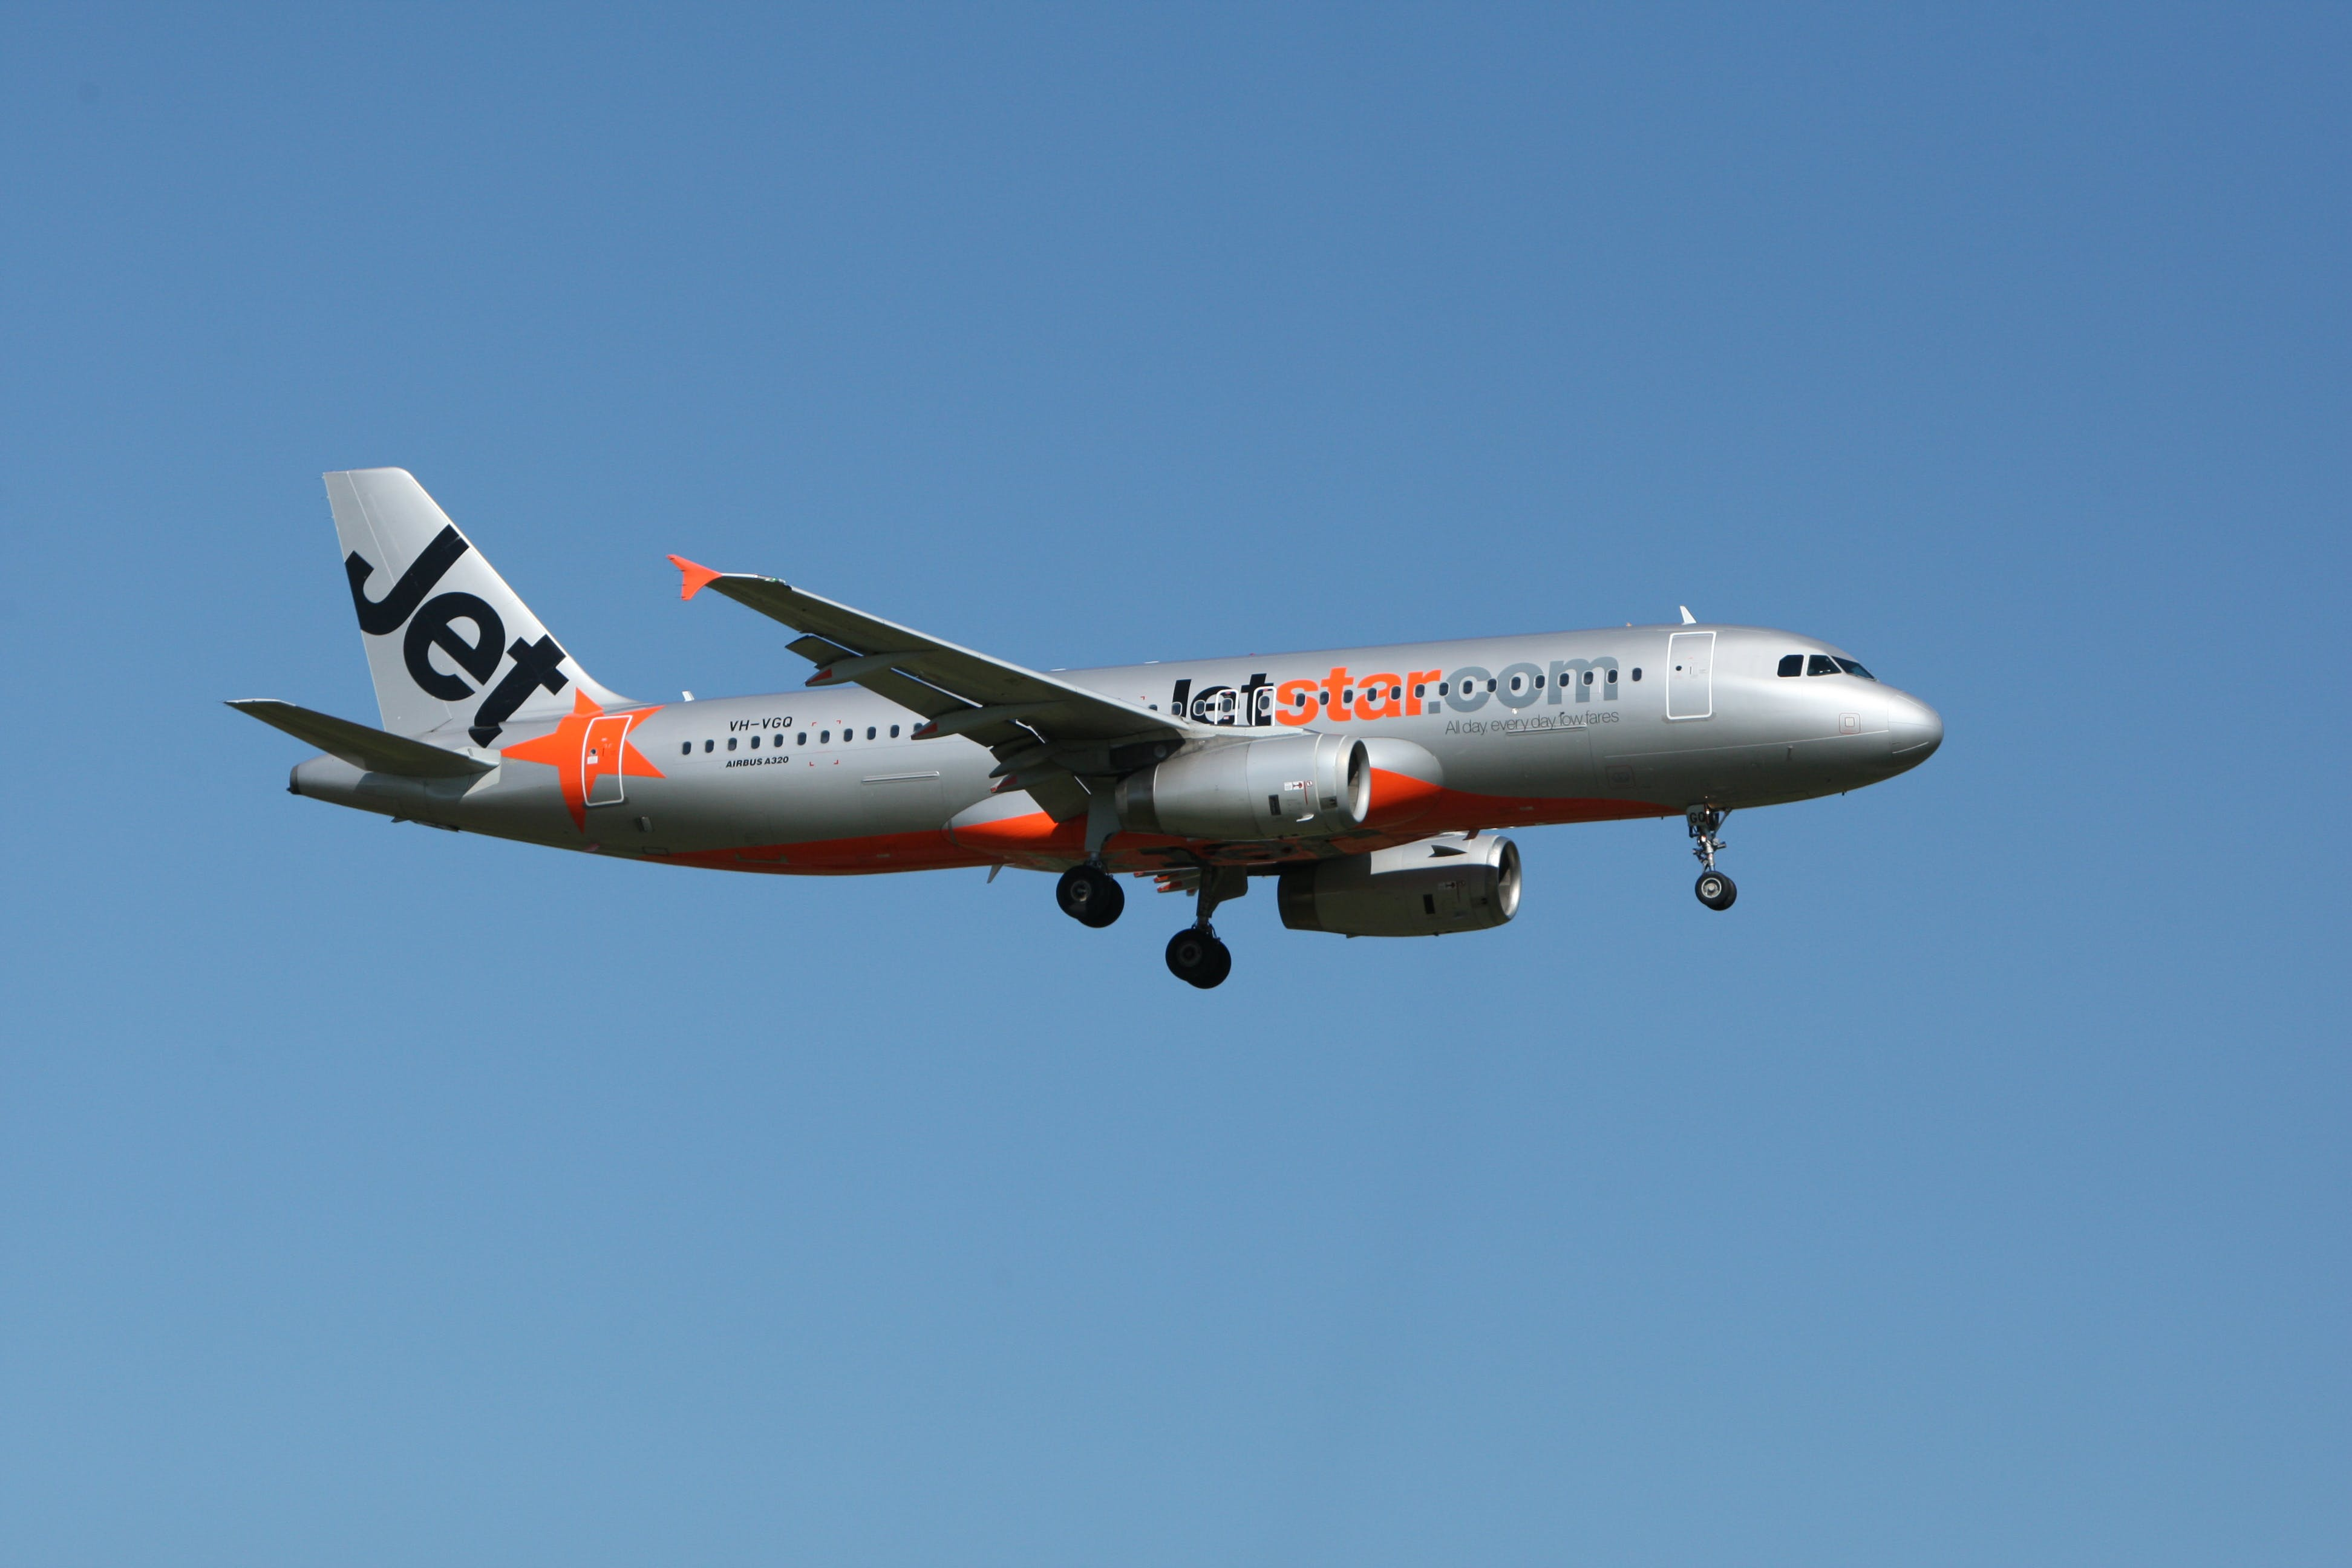 Jetstar Plane Flight Under Blue Sky